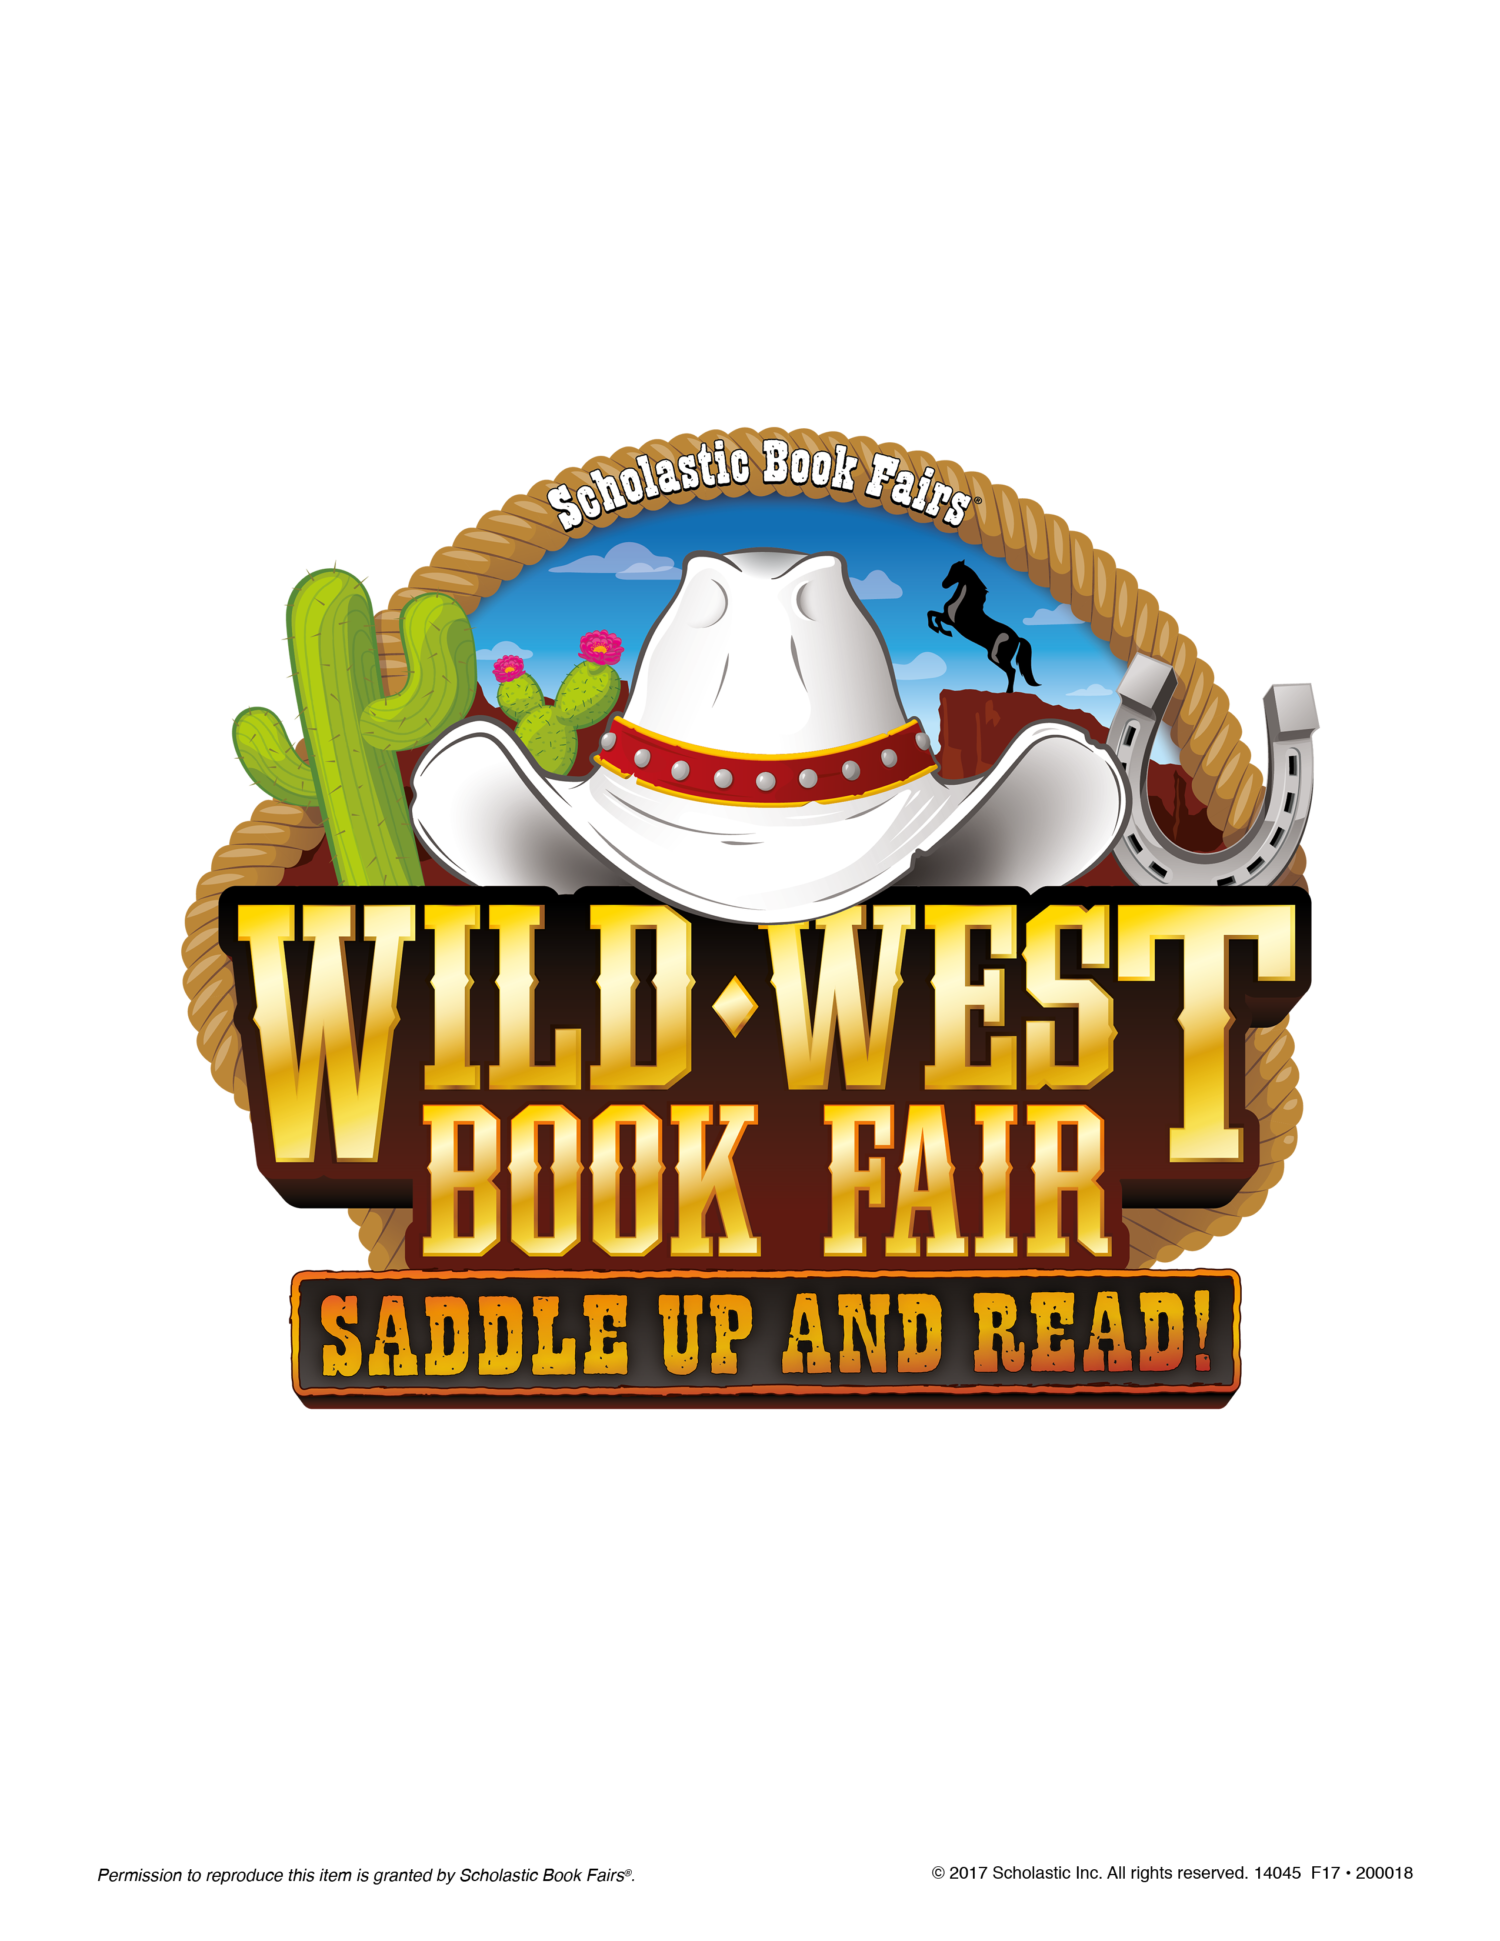 Wild west book fair clipart image black and white download Wild West Book Fair - Patterson Elementary image black and white download